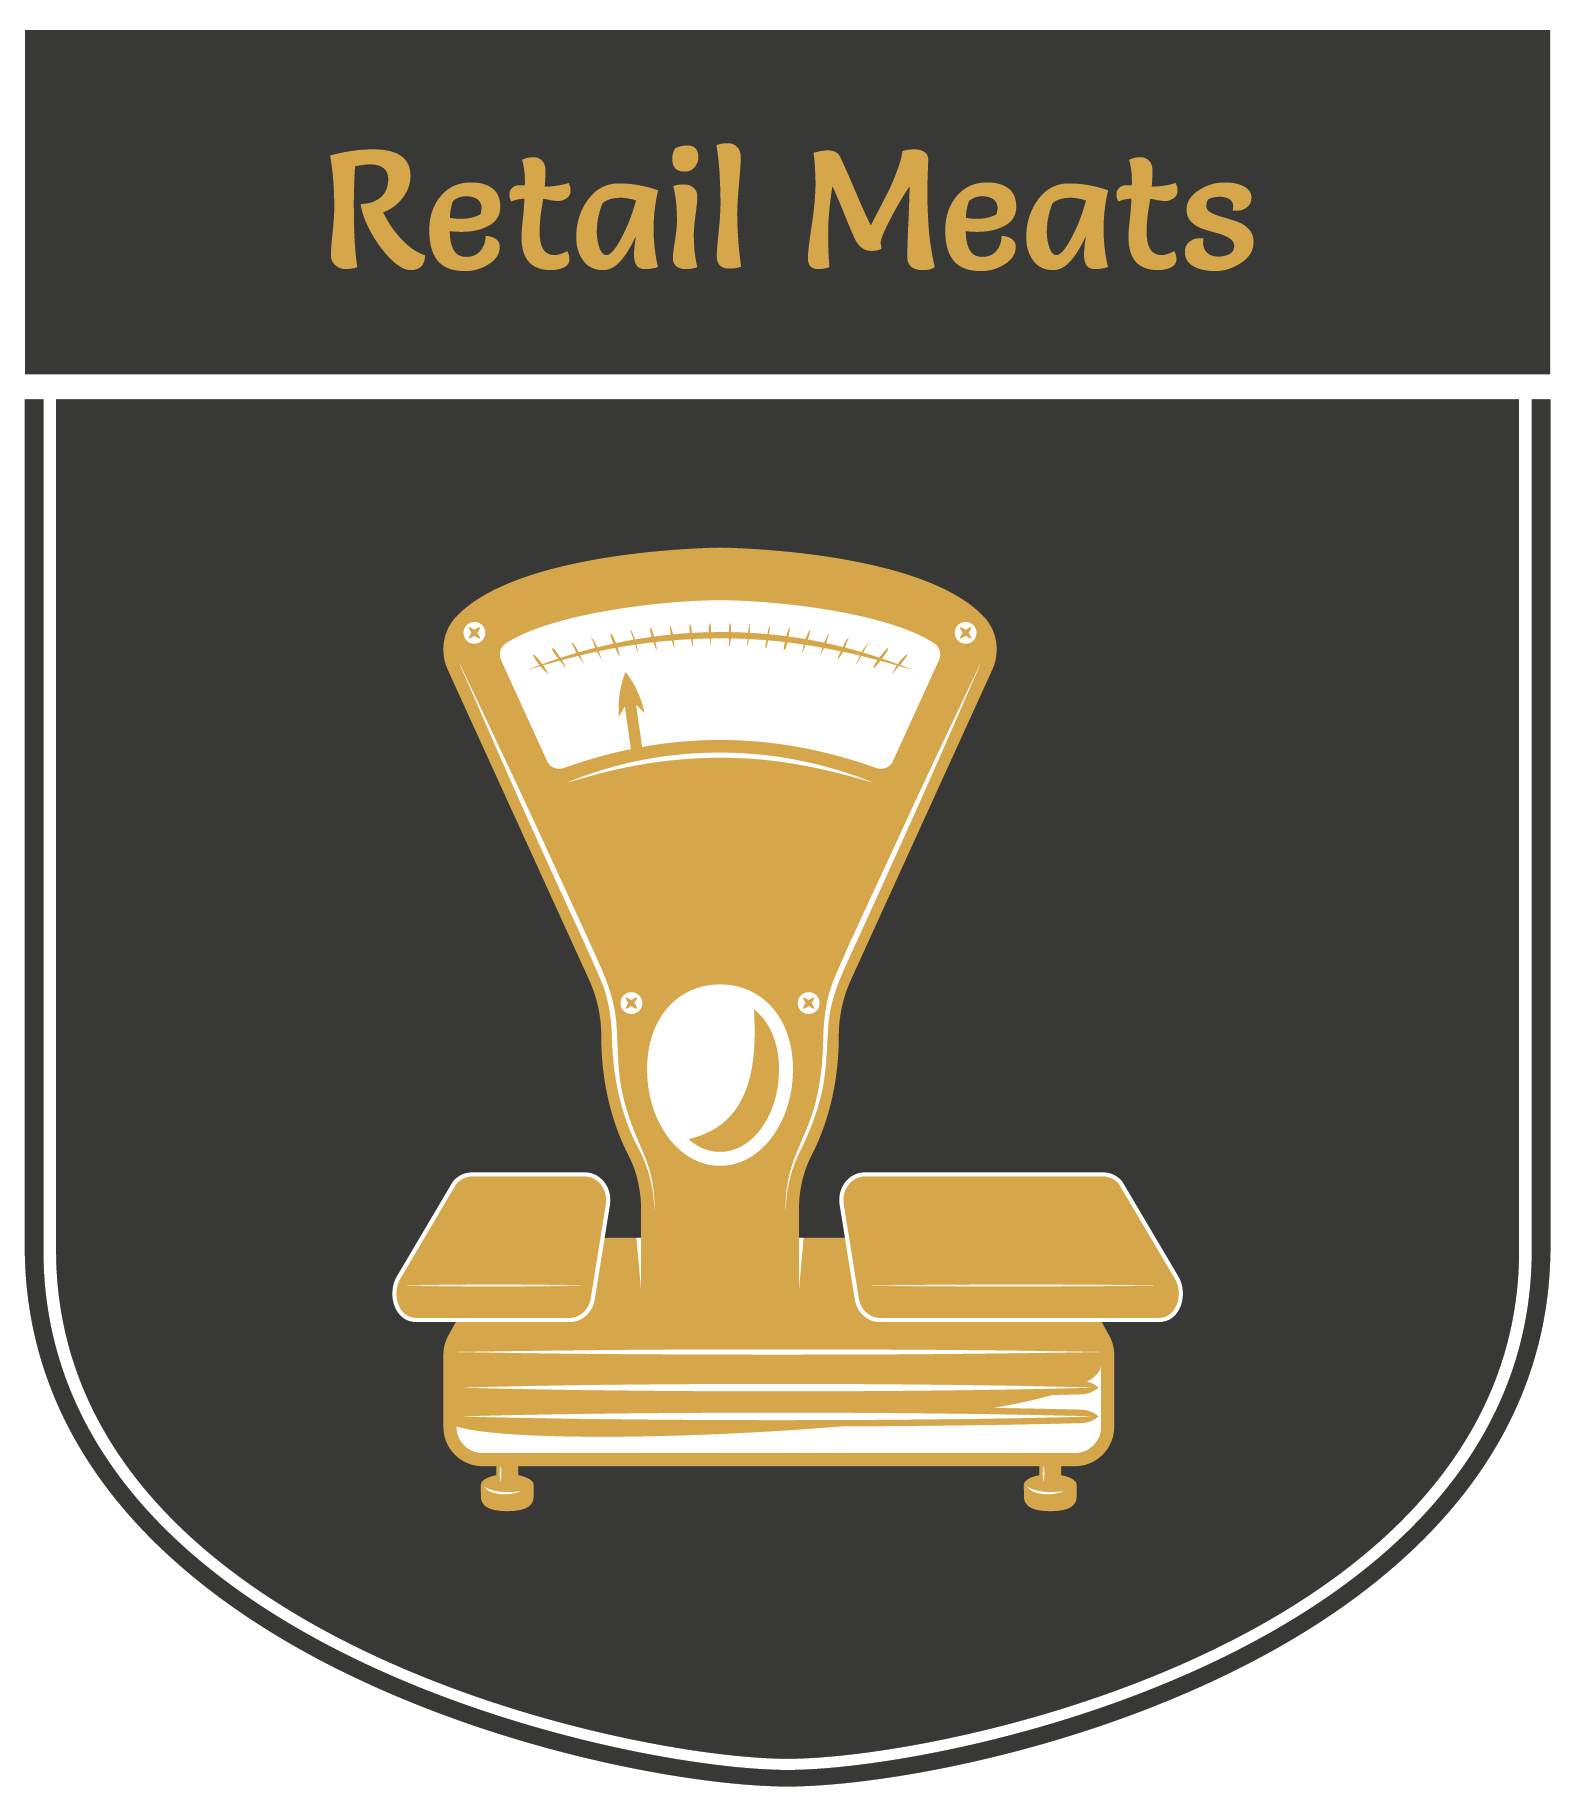 Vertical banner displaying an illustration of a meat scale | Retail Meats